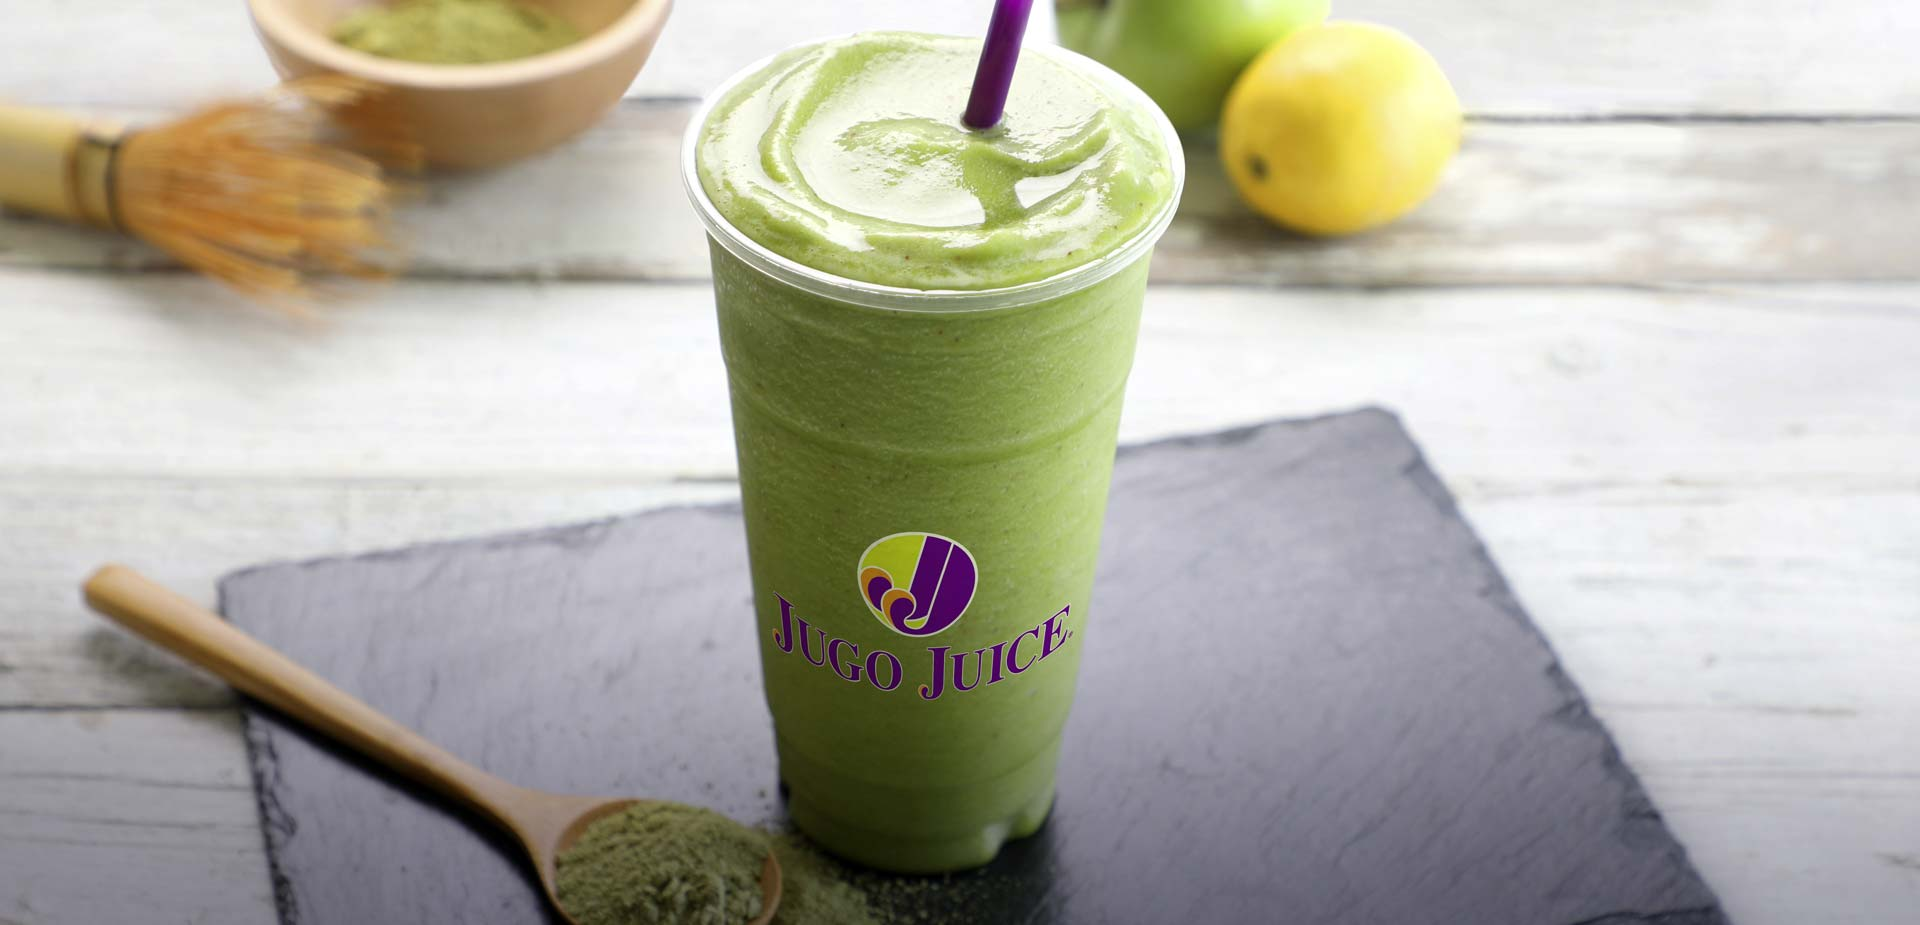 Jugo Juice Online Marketing